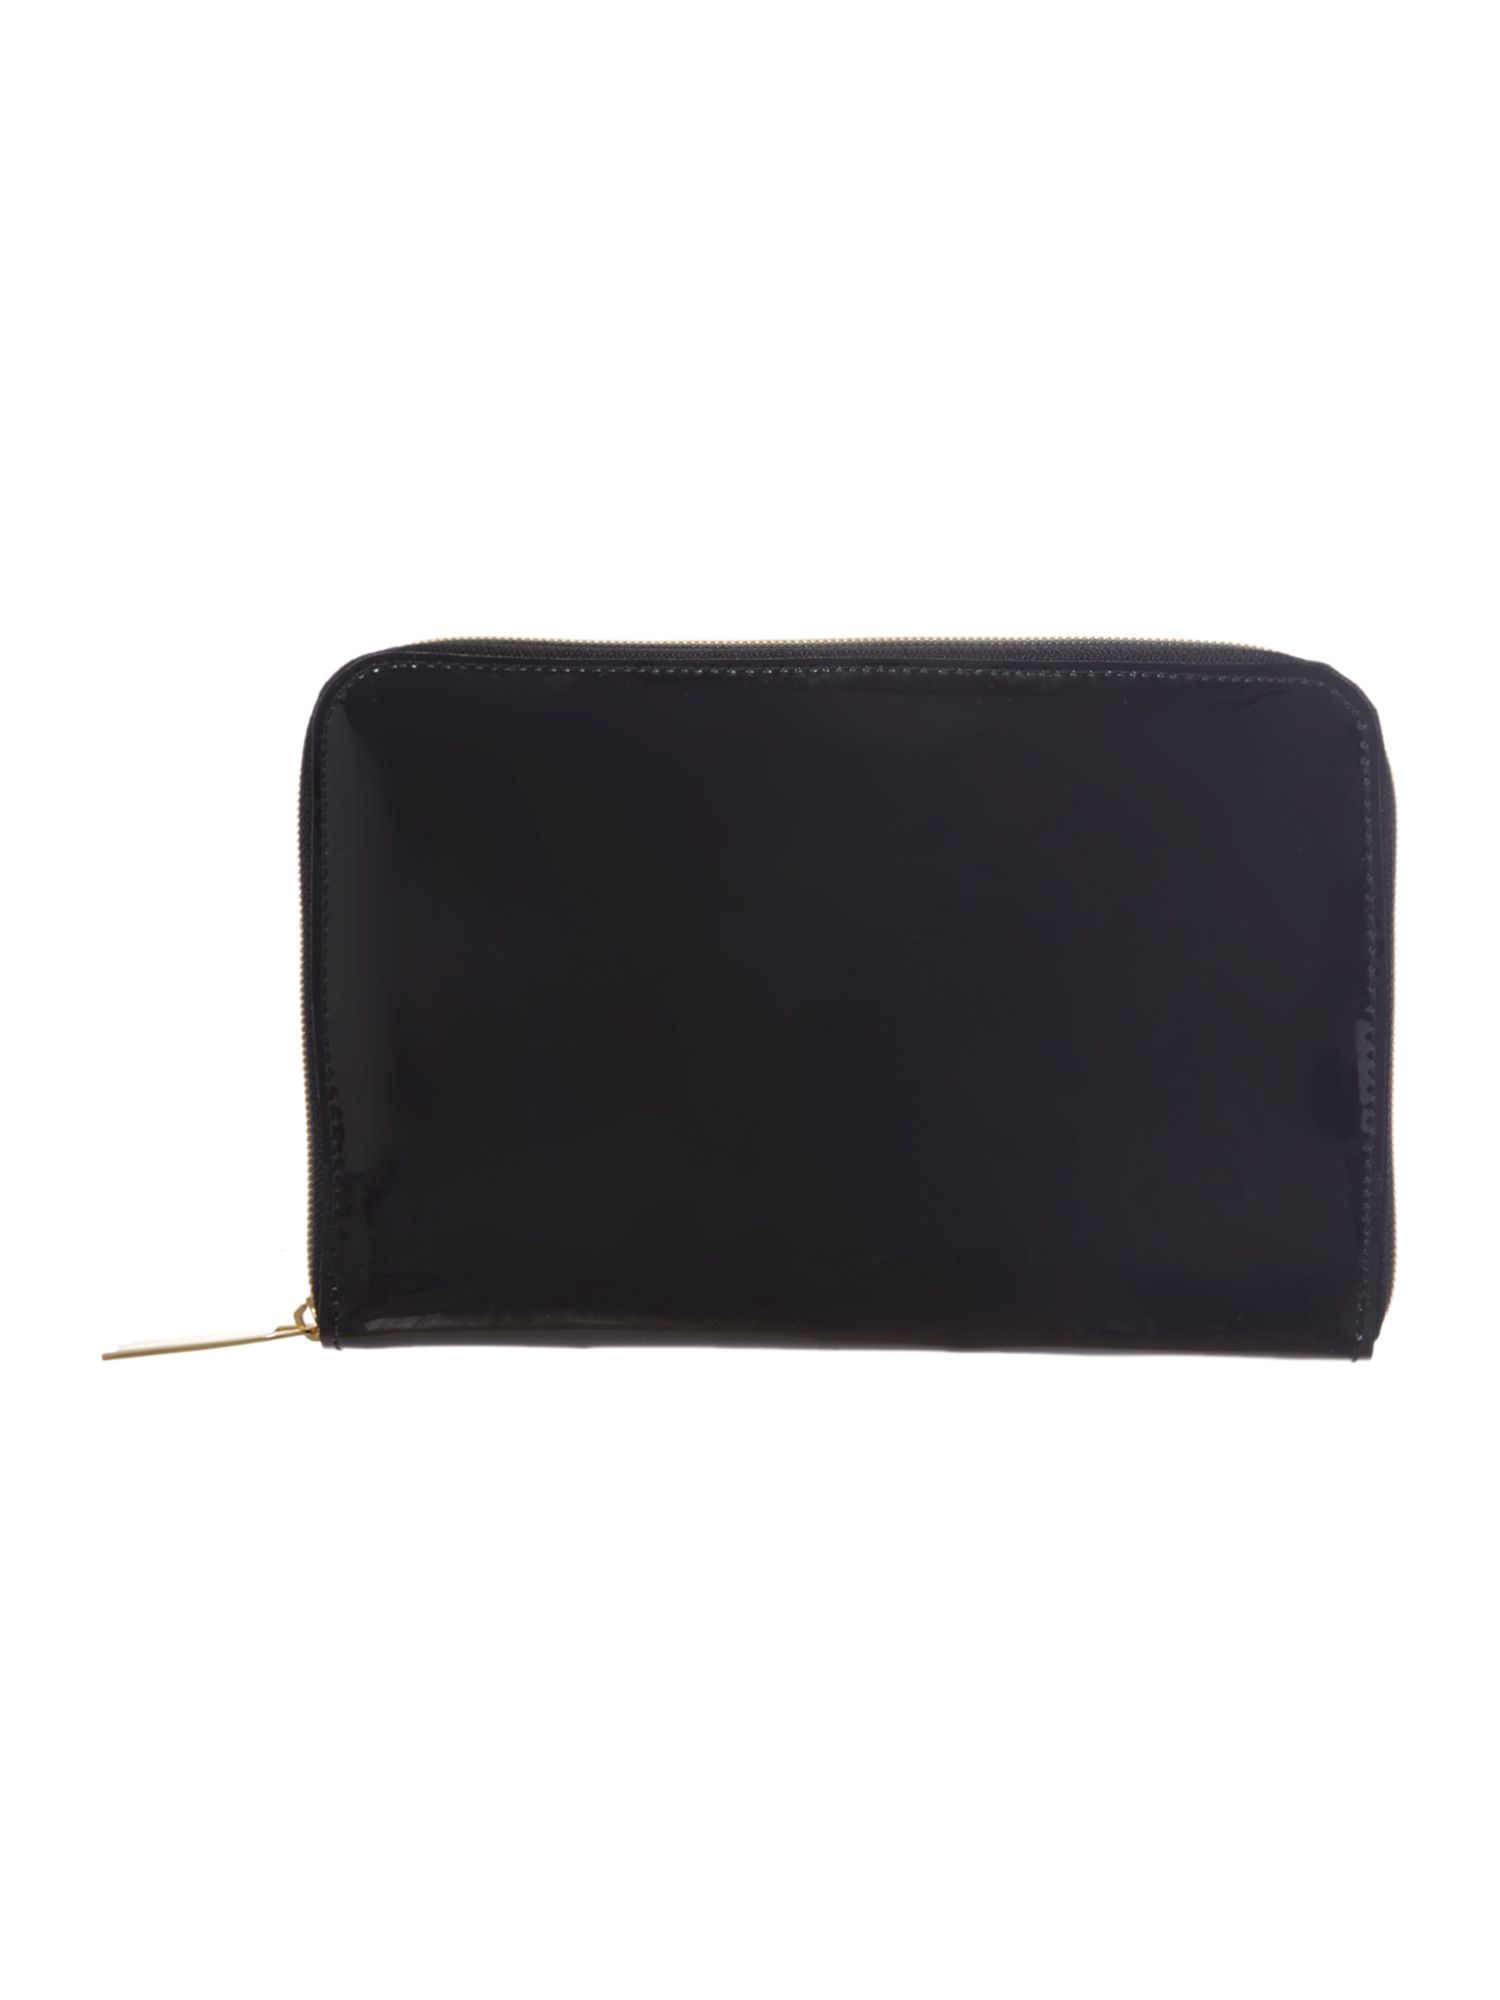 Small black iPad case